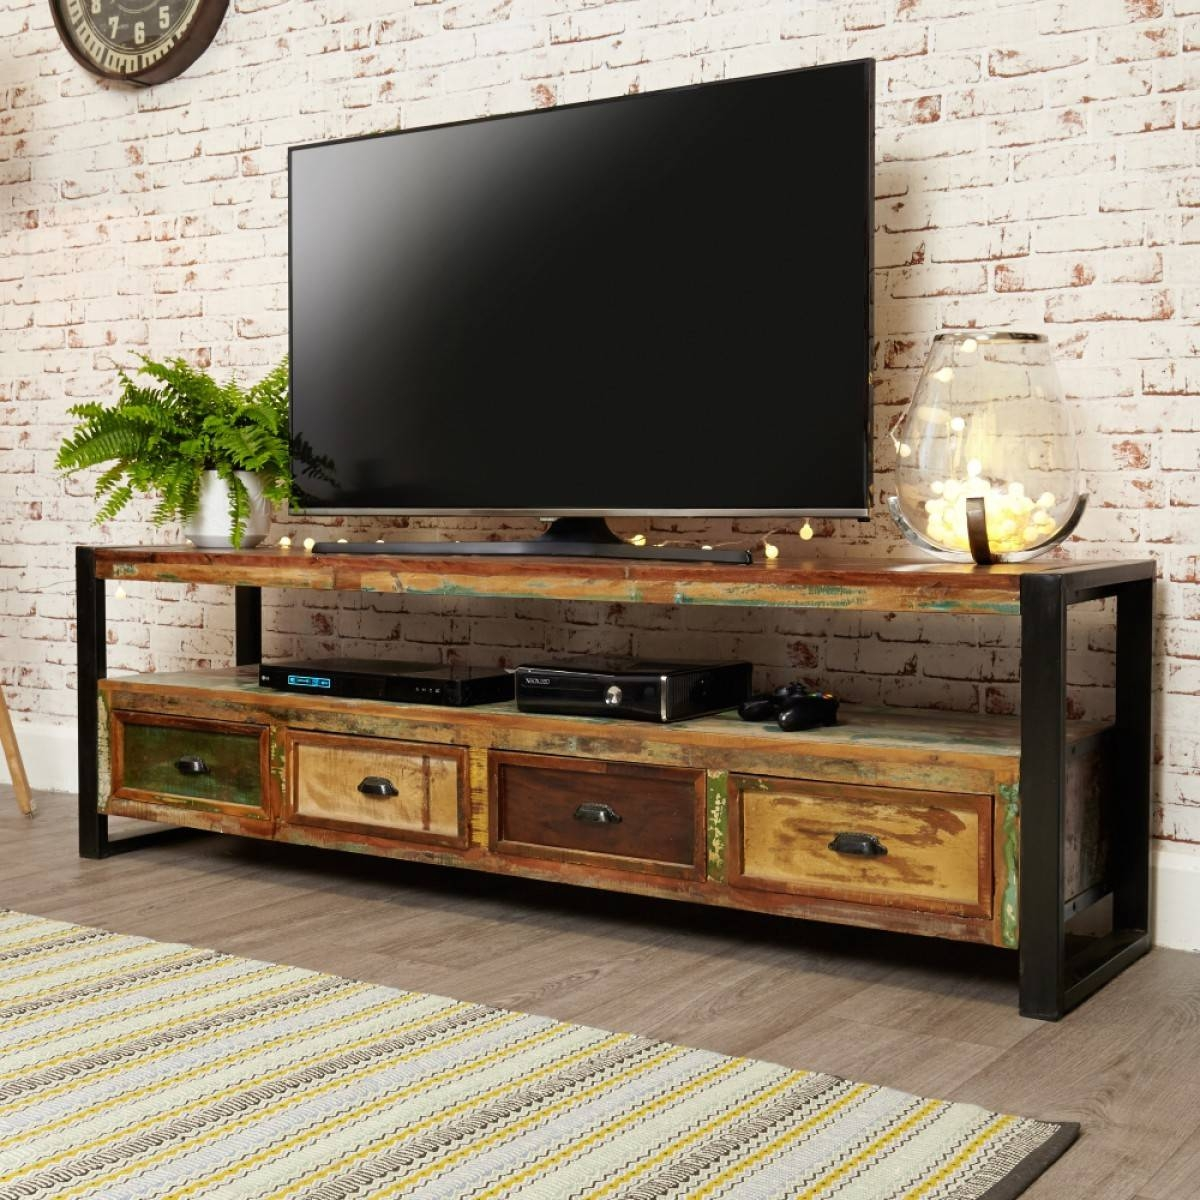 Baumhaus Urban Chic Open Widescreen Tv Cabinet Irf09C within Wide Screen Tv Stands (Image 4 of 15)